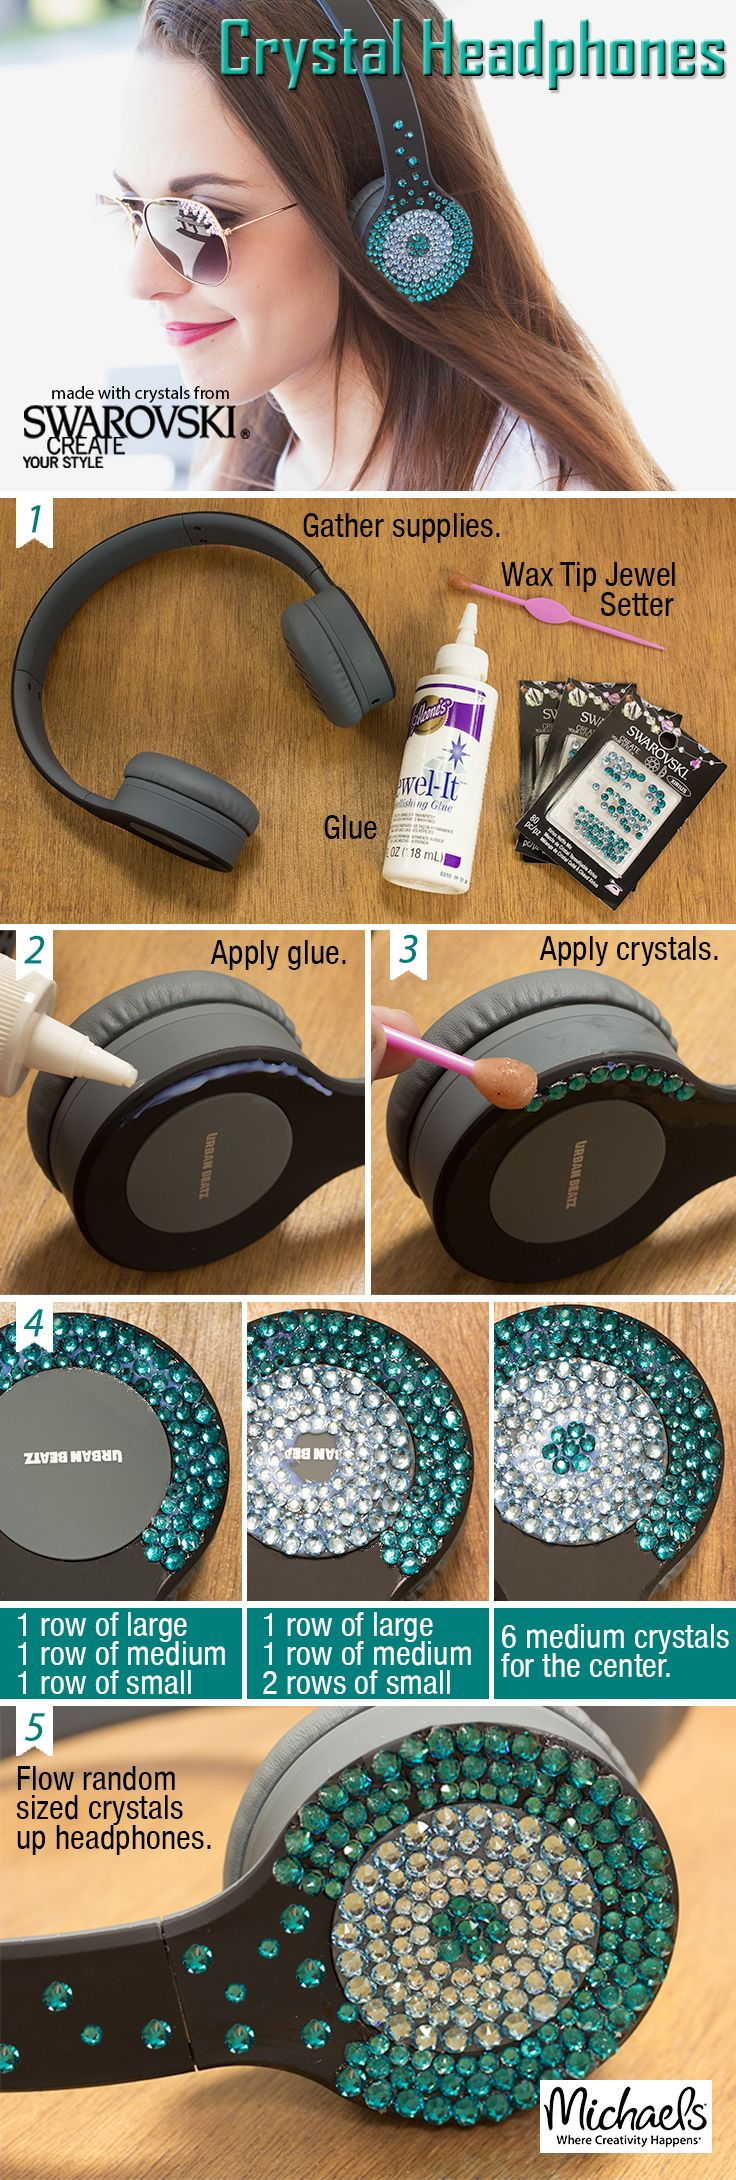 Bling your headphones the easy DIY way with Swarvovski Hot Fix Crystals